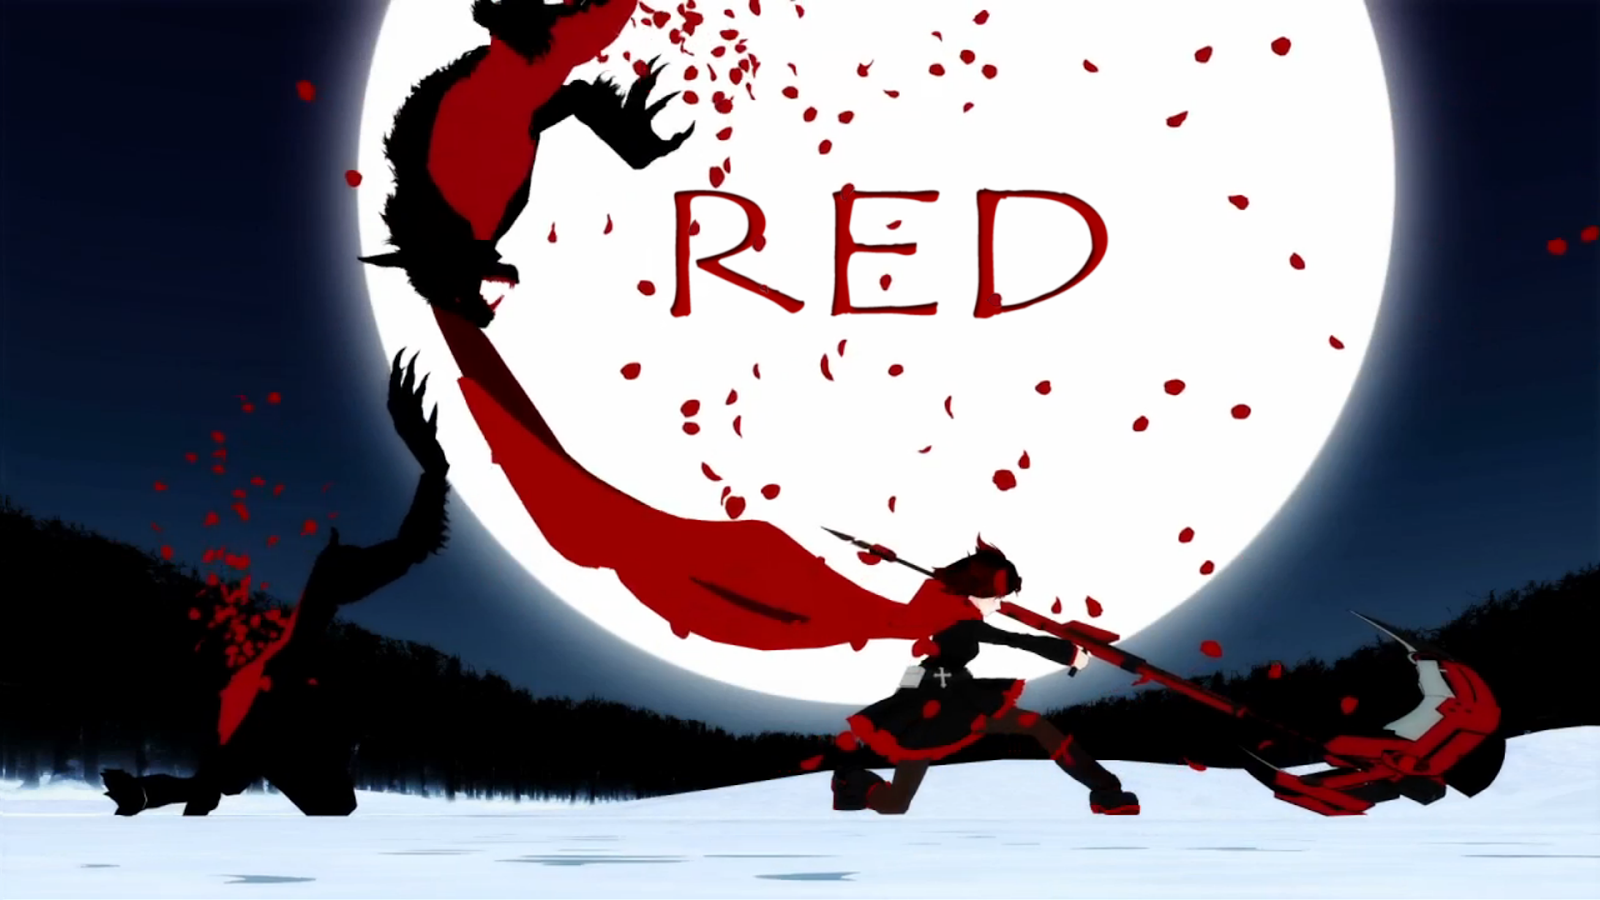 Rwby Wallpaper Ruby Ruby rose red rwby death 1600x900